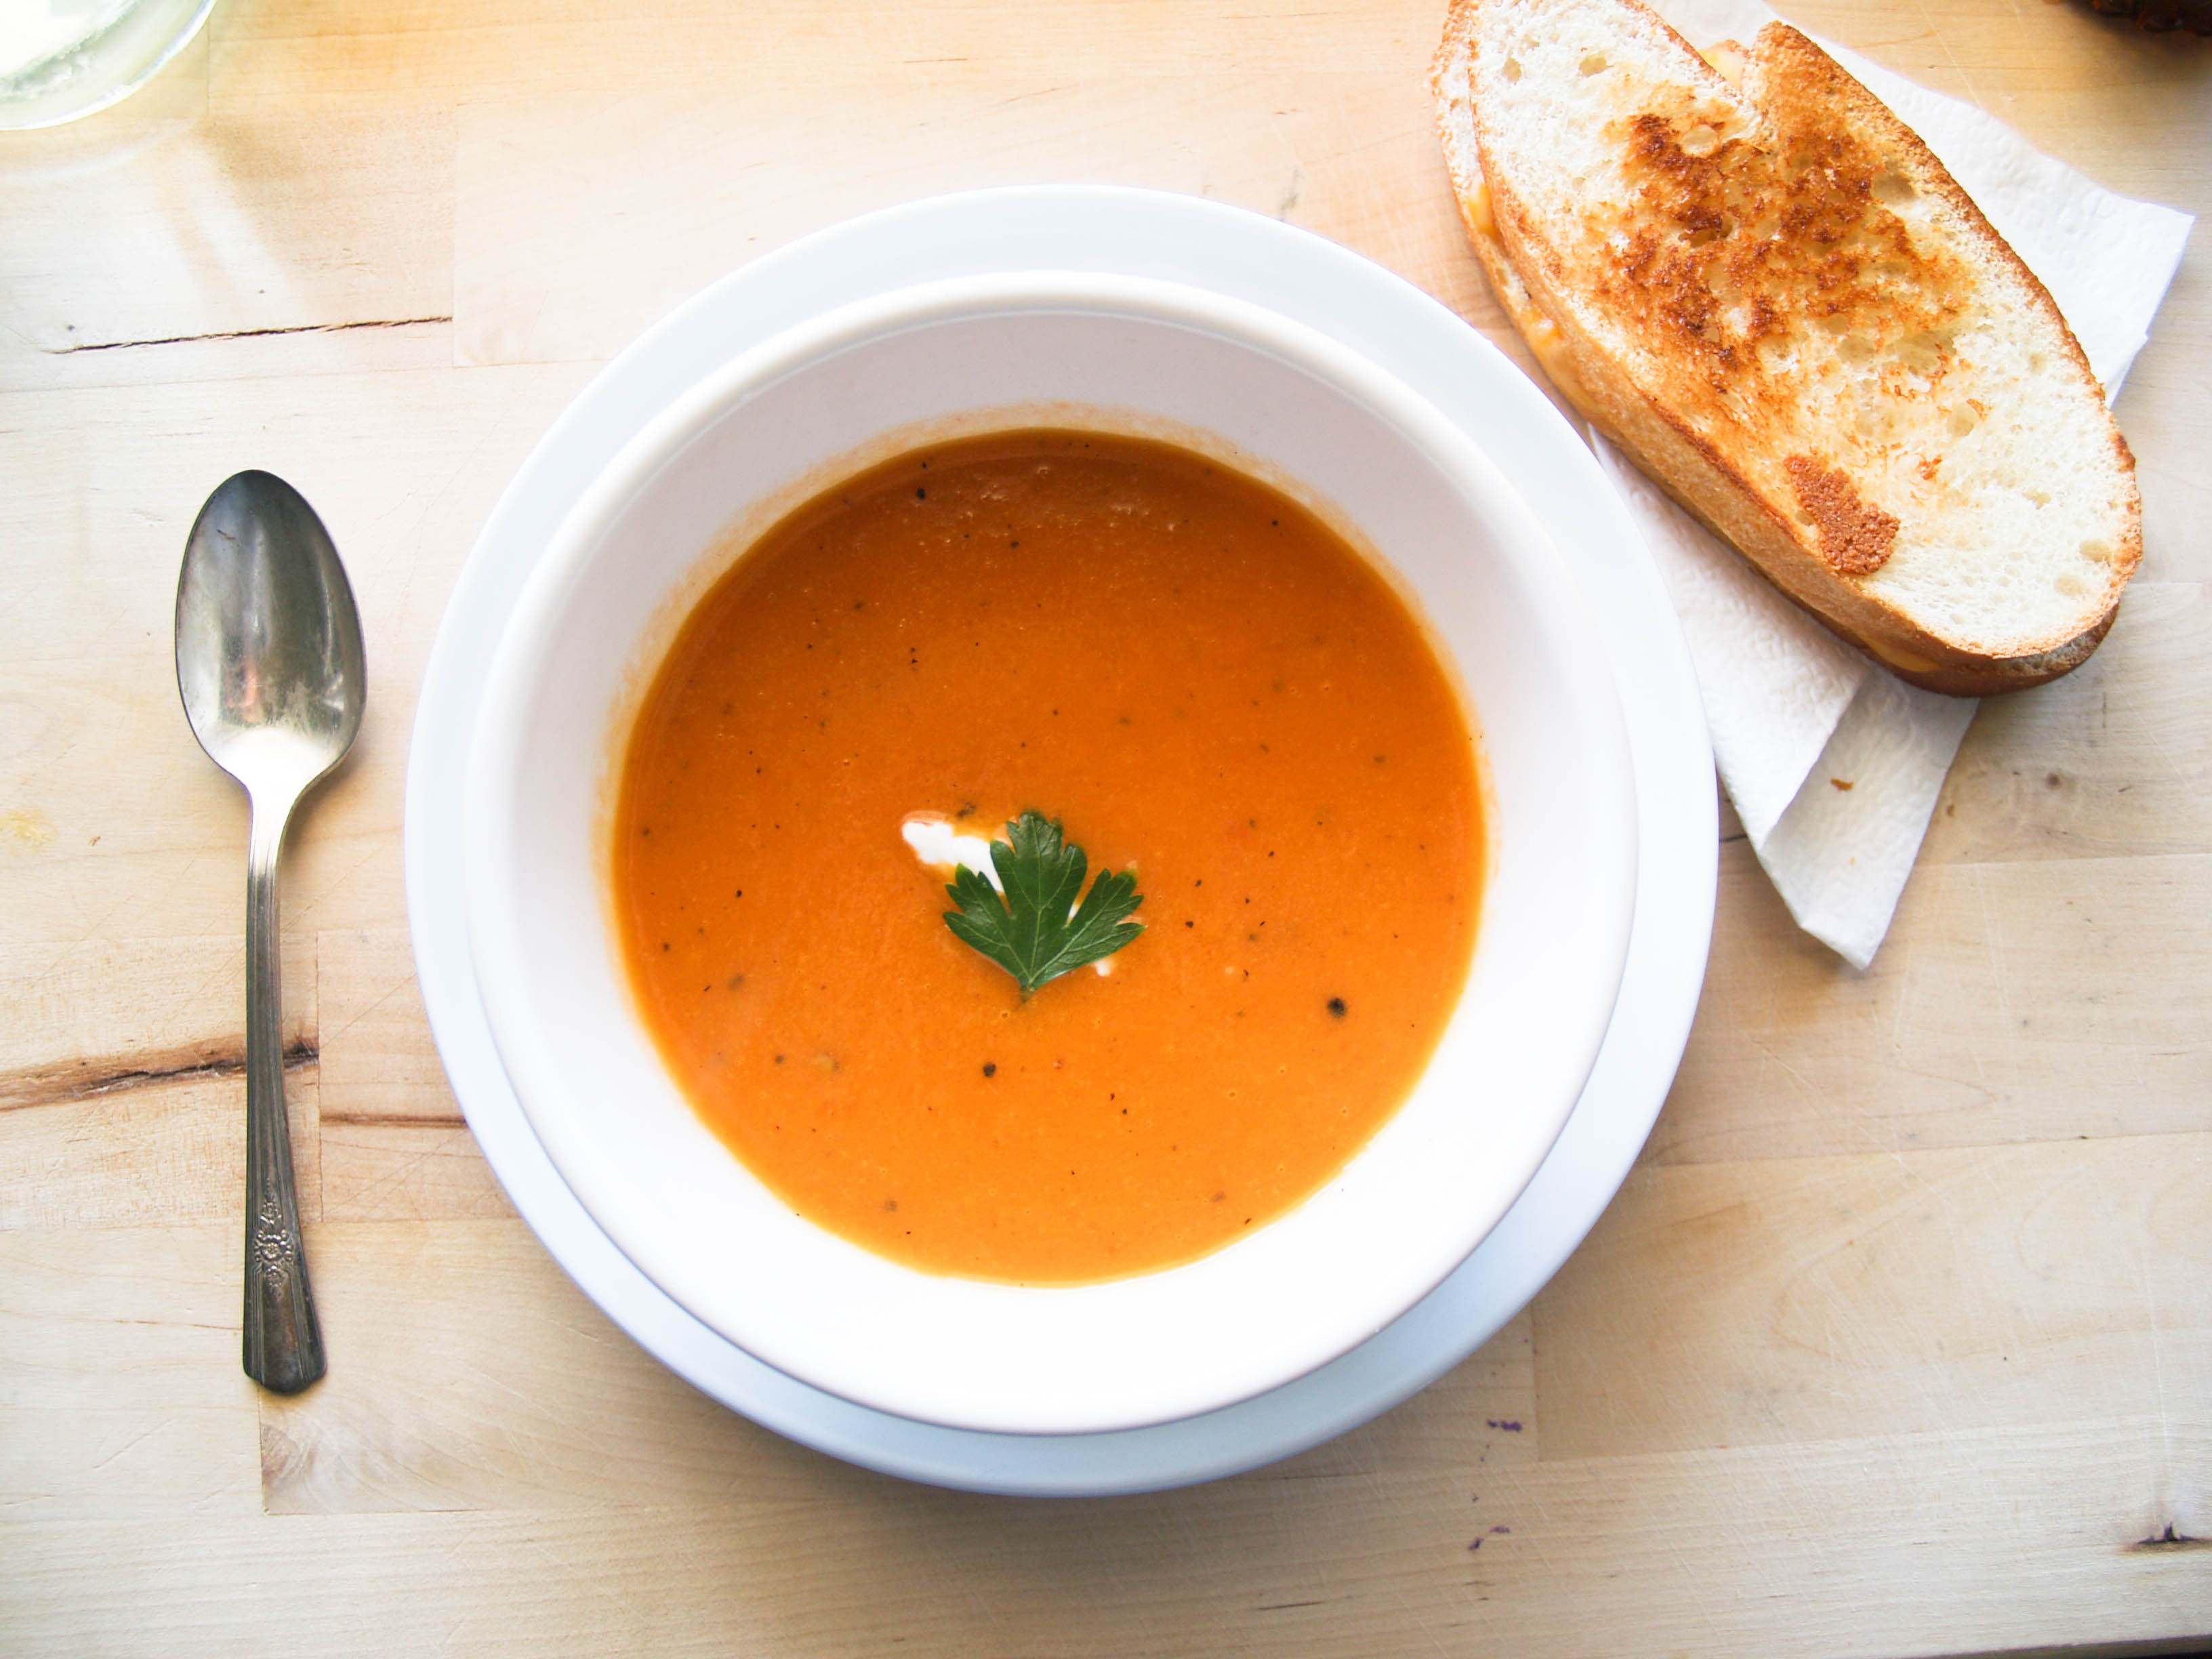 Soup Wallpapers and Background Images   stmednet 3264x2448